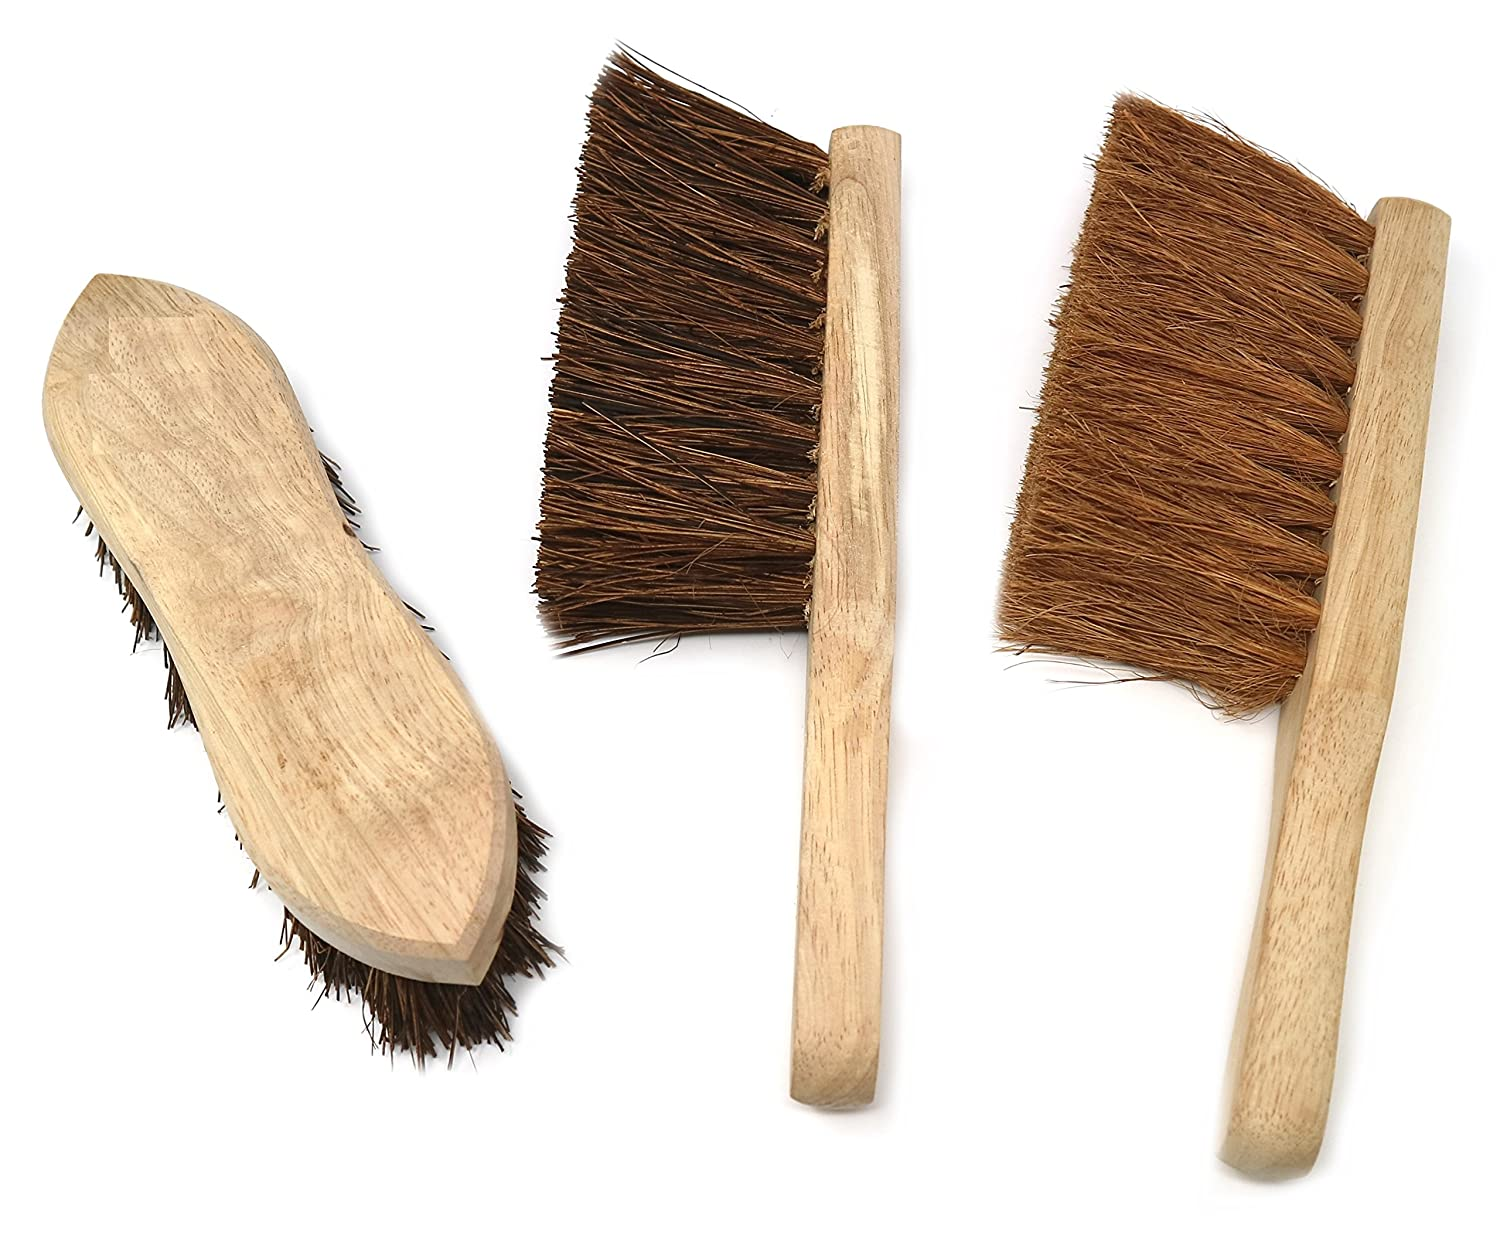 Hand Brushes, Pack of 3, Sweeping and Scrubbing Wooden Cleaning Brushes Clay:Roberts